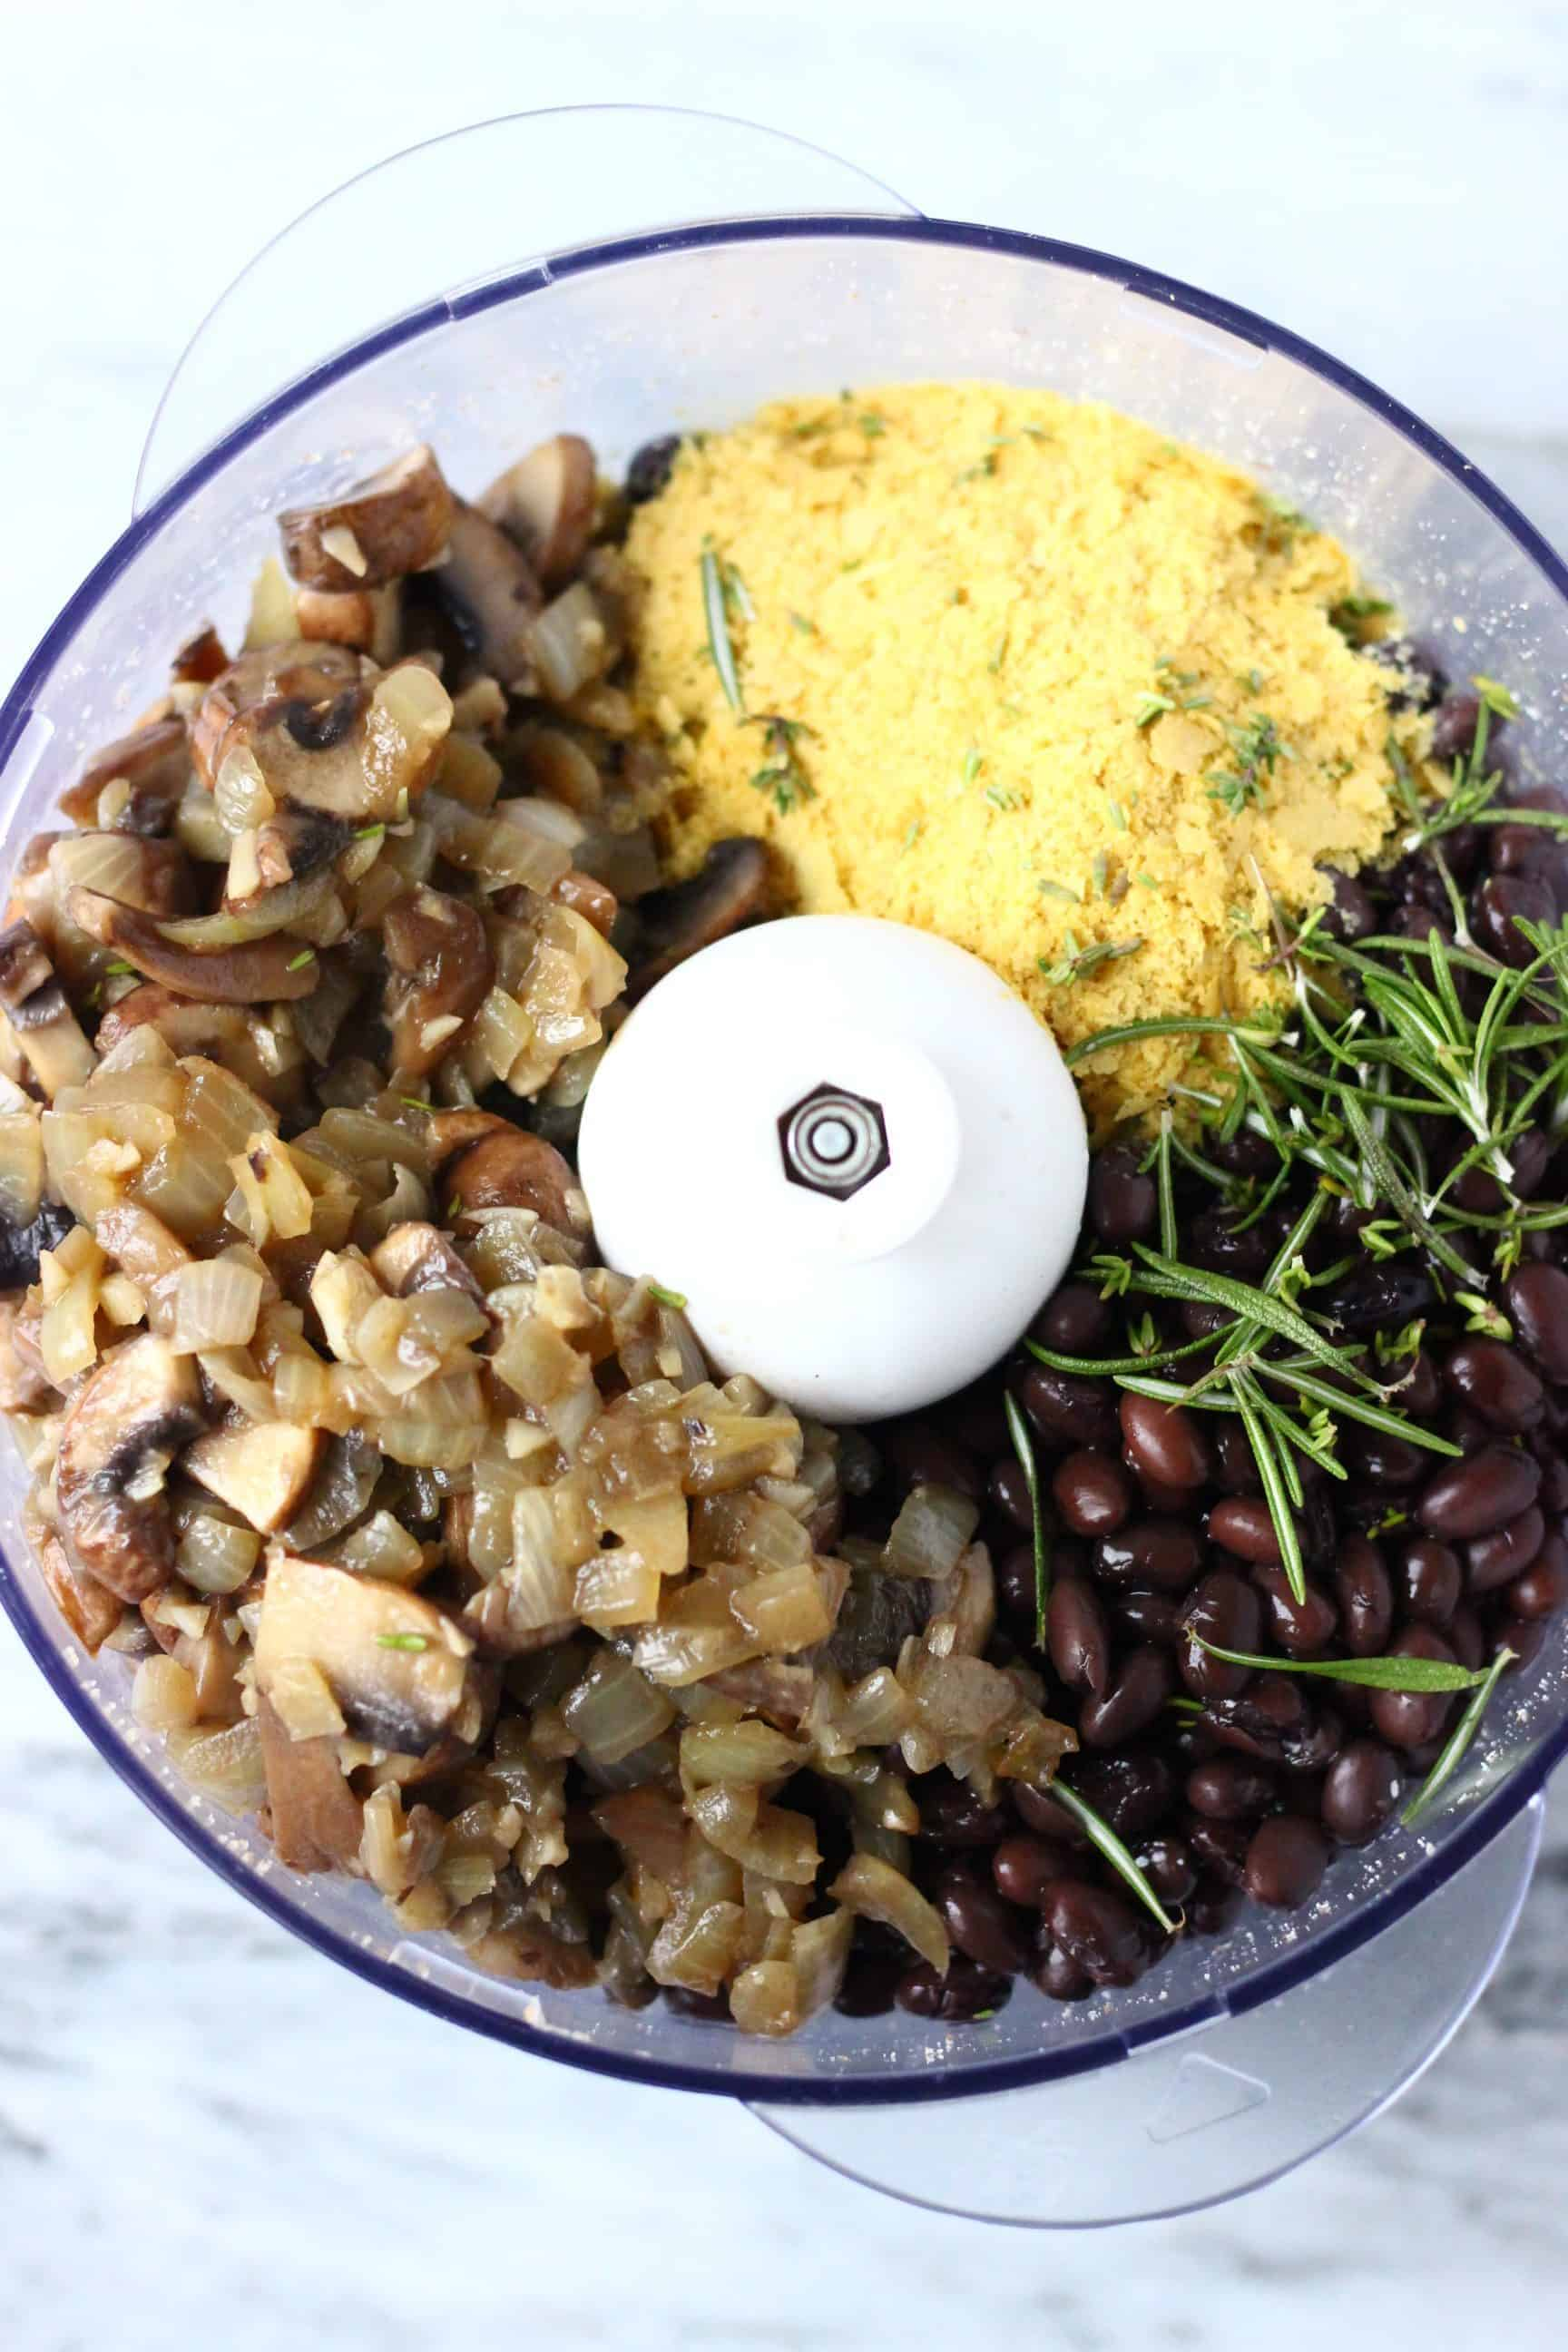 Fried onion and mushrooms, nutritional yeast, rosemary, black beans and nutritional yeast in a food processor